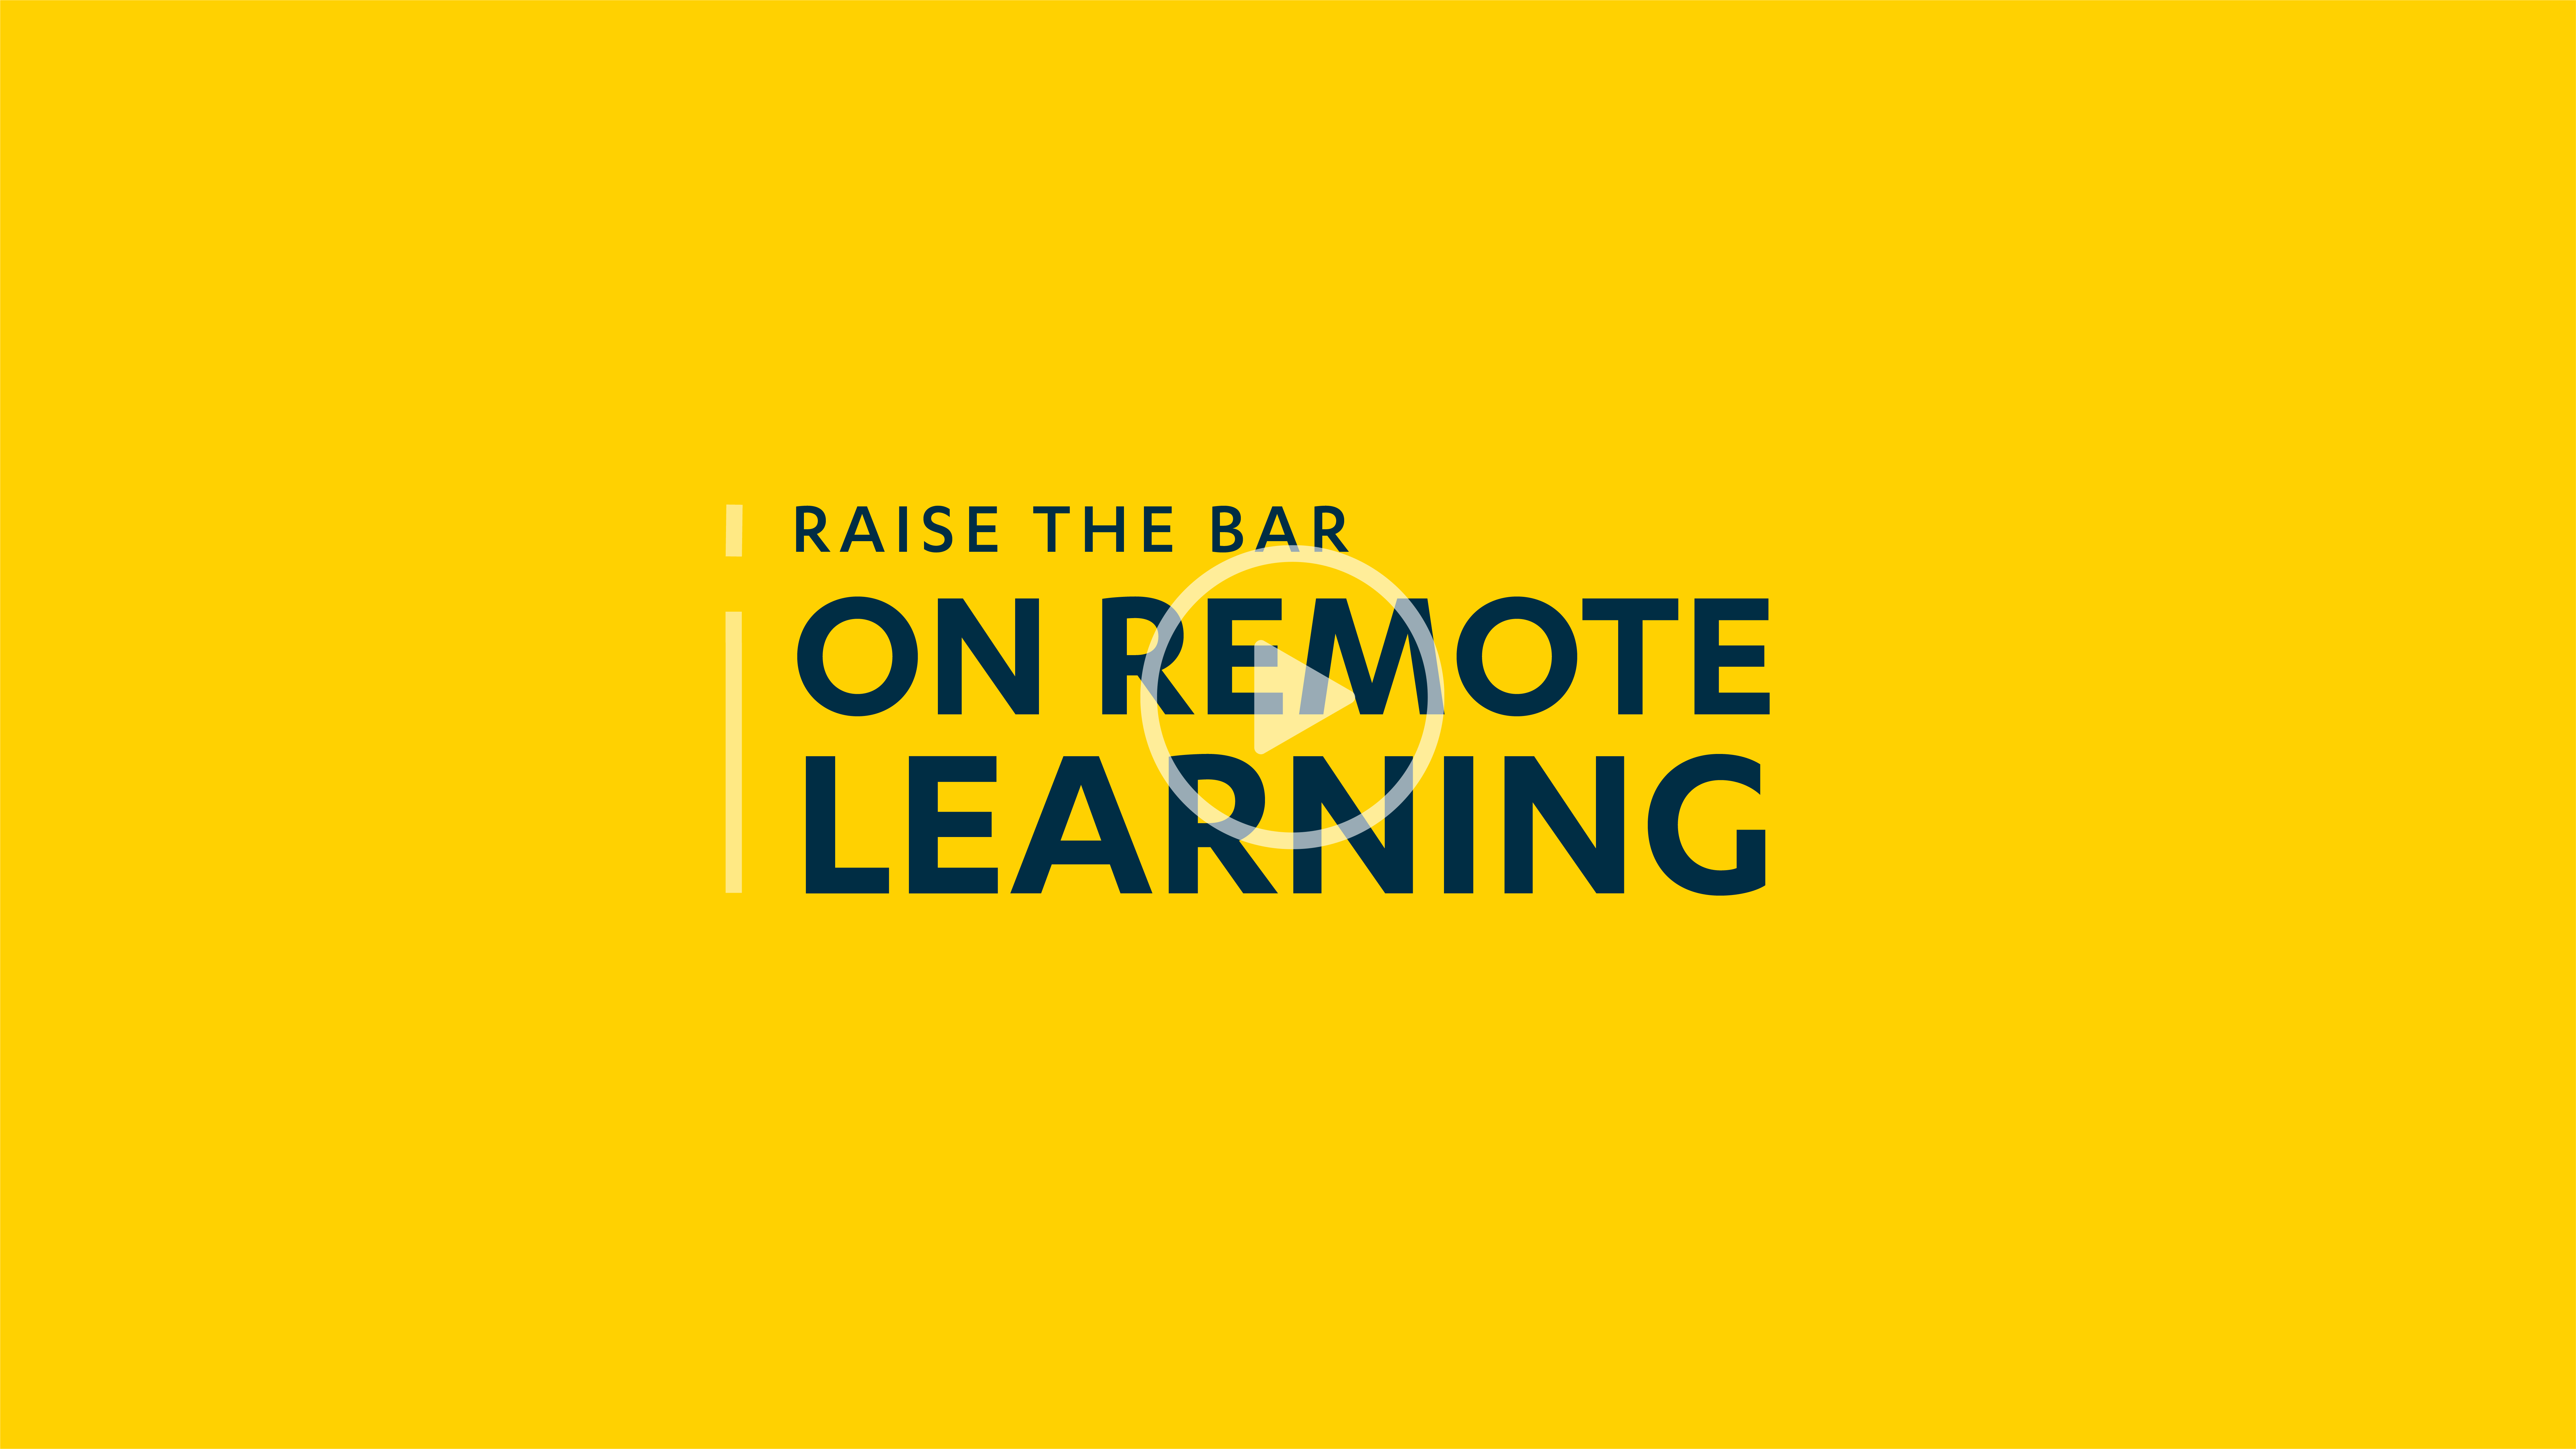 Raise the Bar on Remote Learning